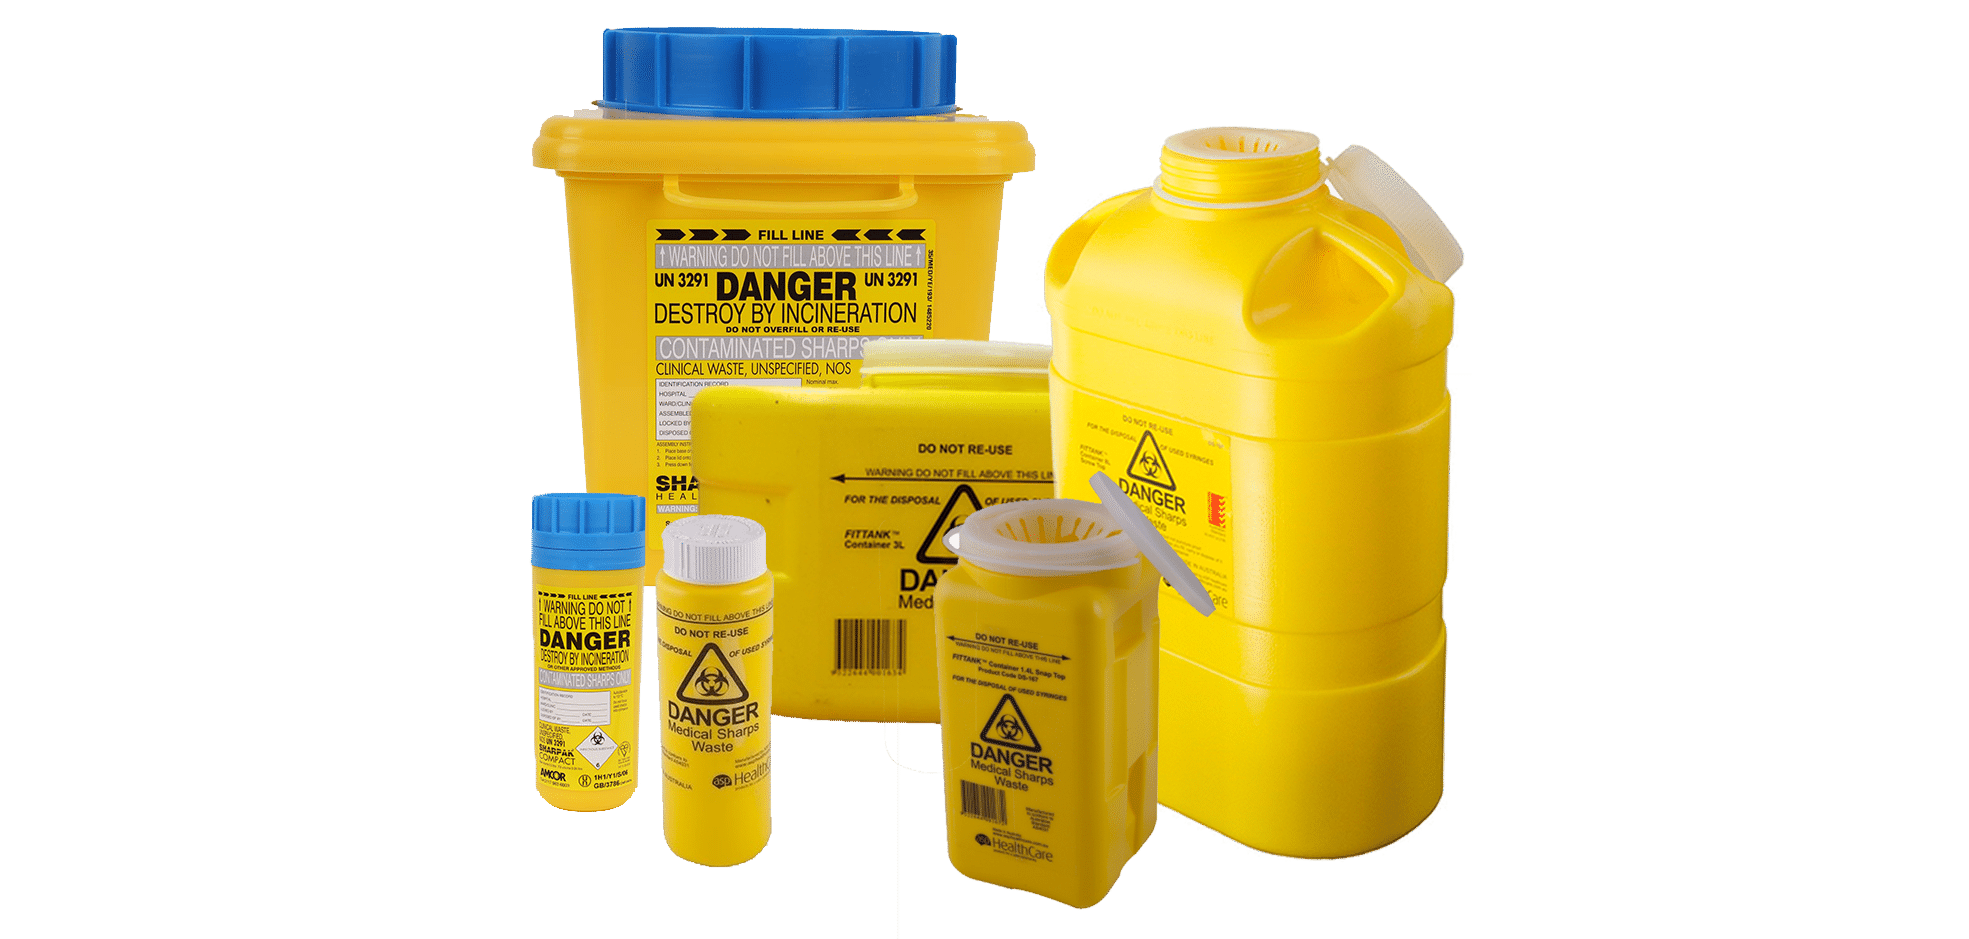 6 yellow medical sharps containers in a range of sizes